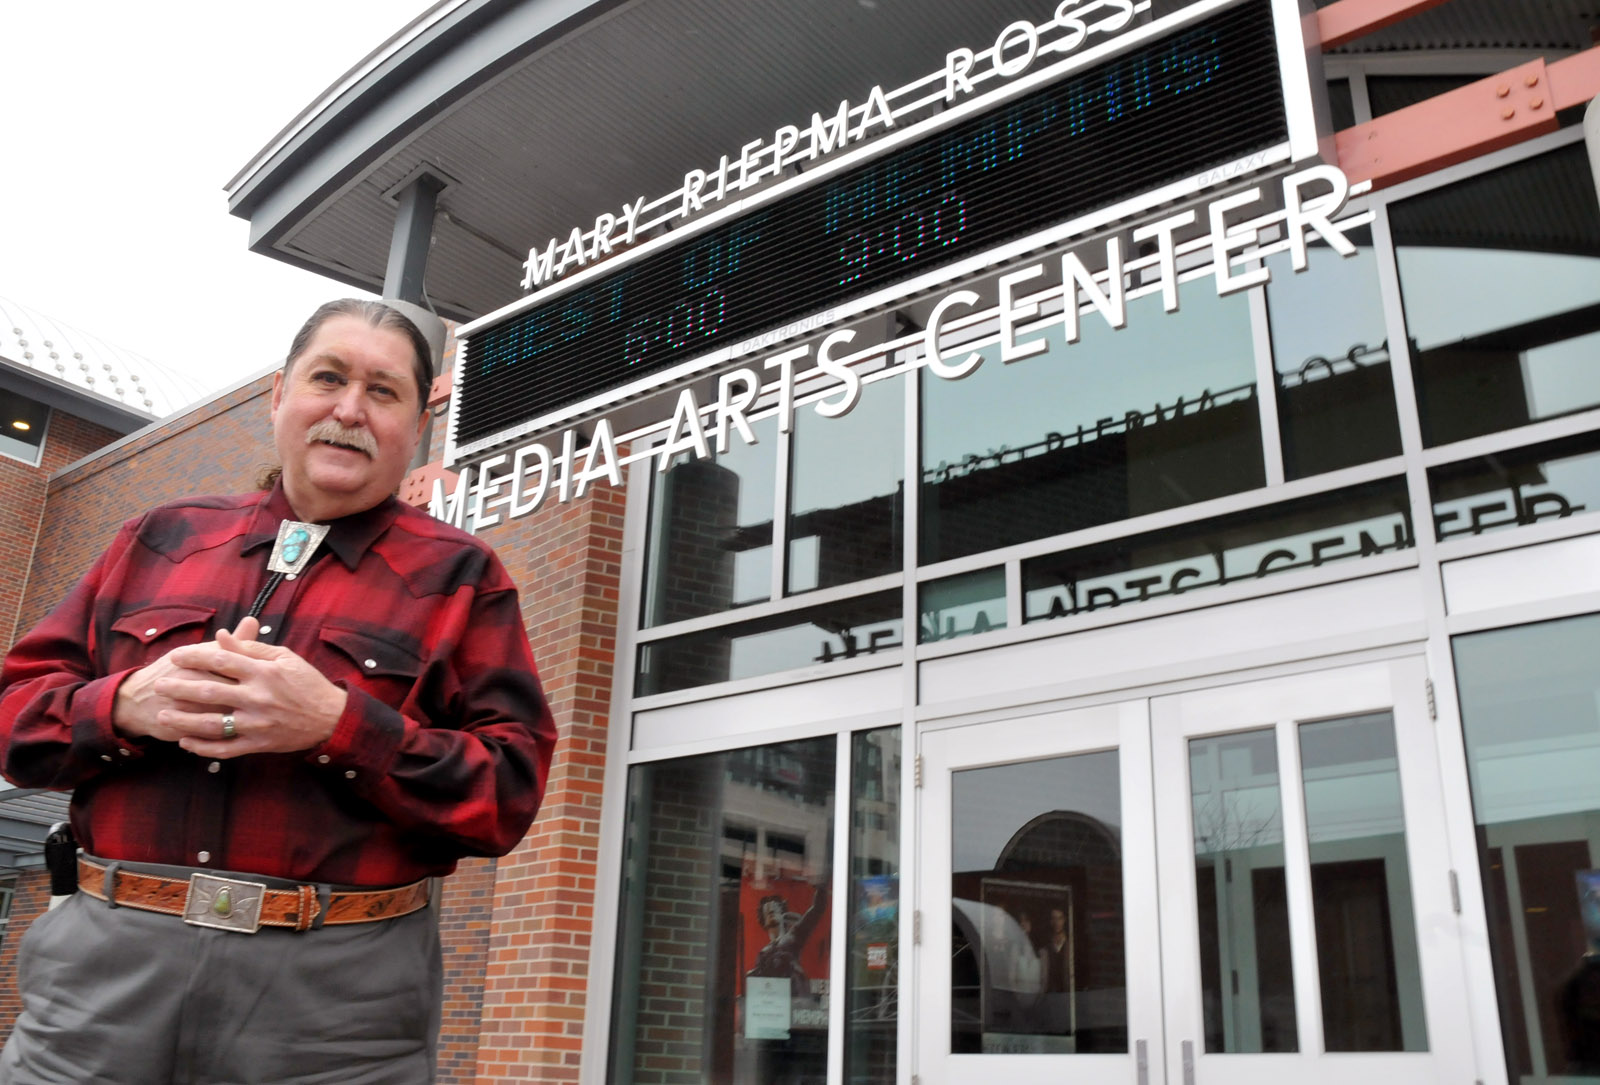 Danny Lee Ladely, who is in his 40th year at UNL, stands outside the Mary Riepma Ross Media Arts Center.